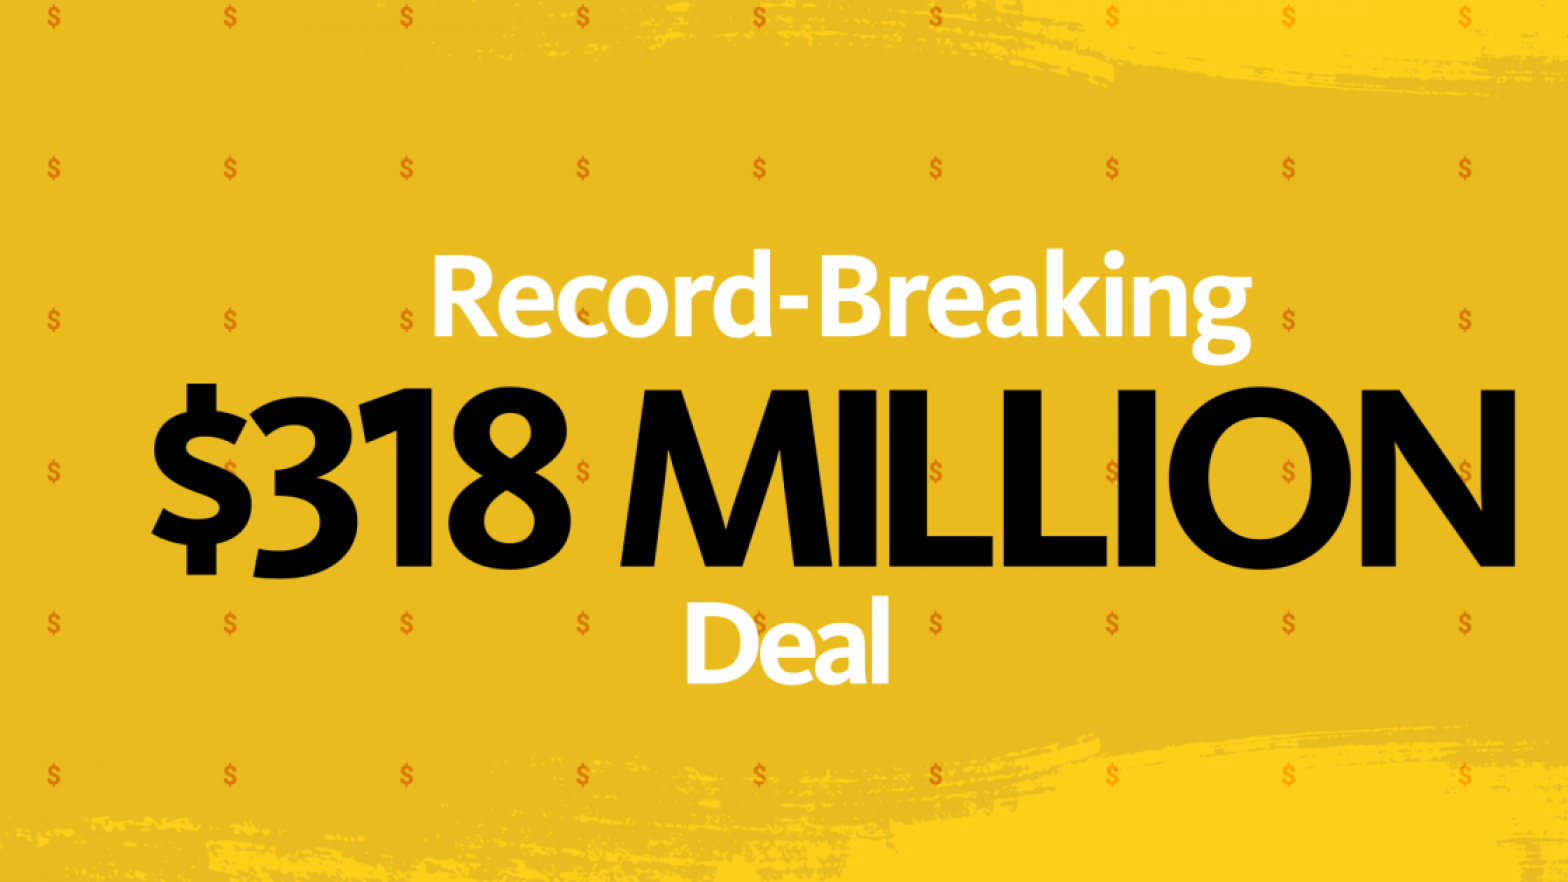 """Record Breaking"" in white font, font-size small. ""$318 Million"" on line 2 in black font, font-size large. ""Deal"" on line 3 in white, font-size small. All centered on yellow and mustard textured background."